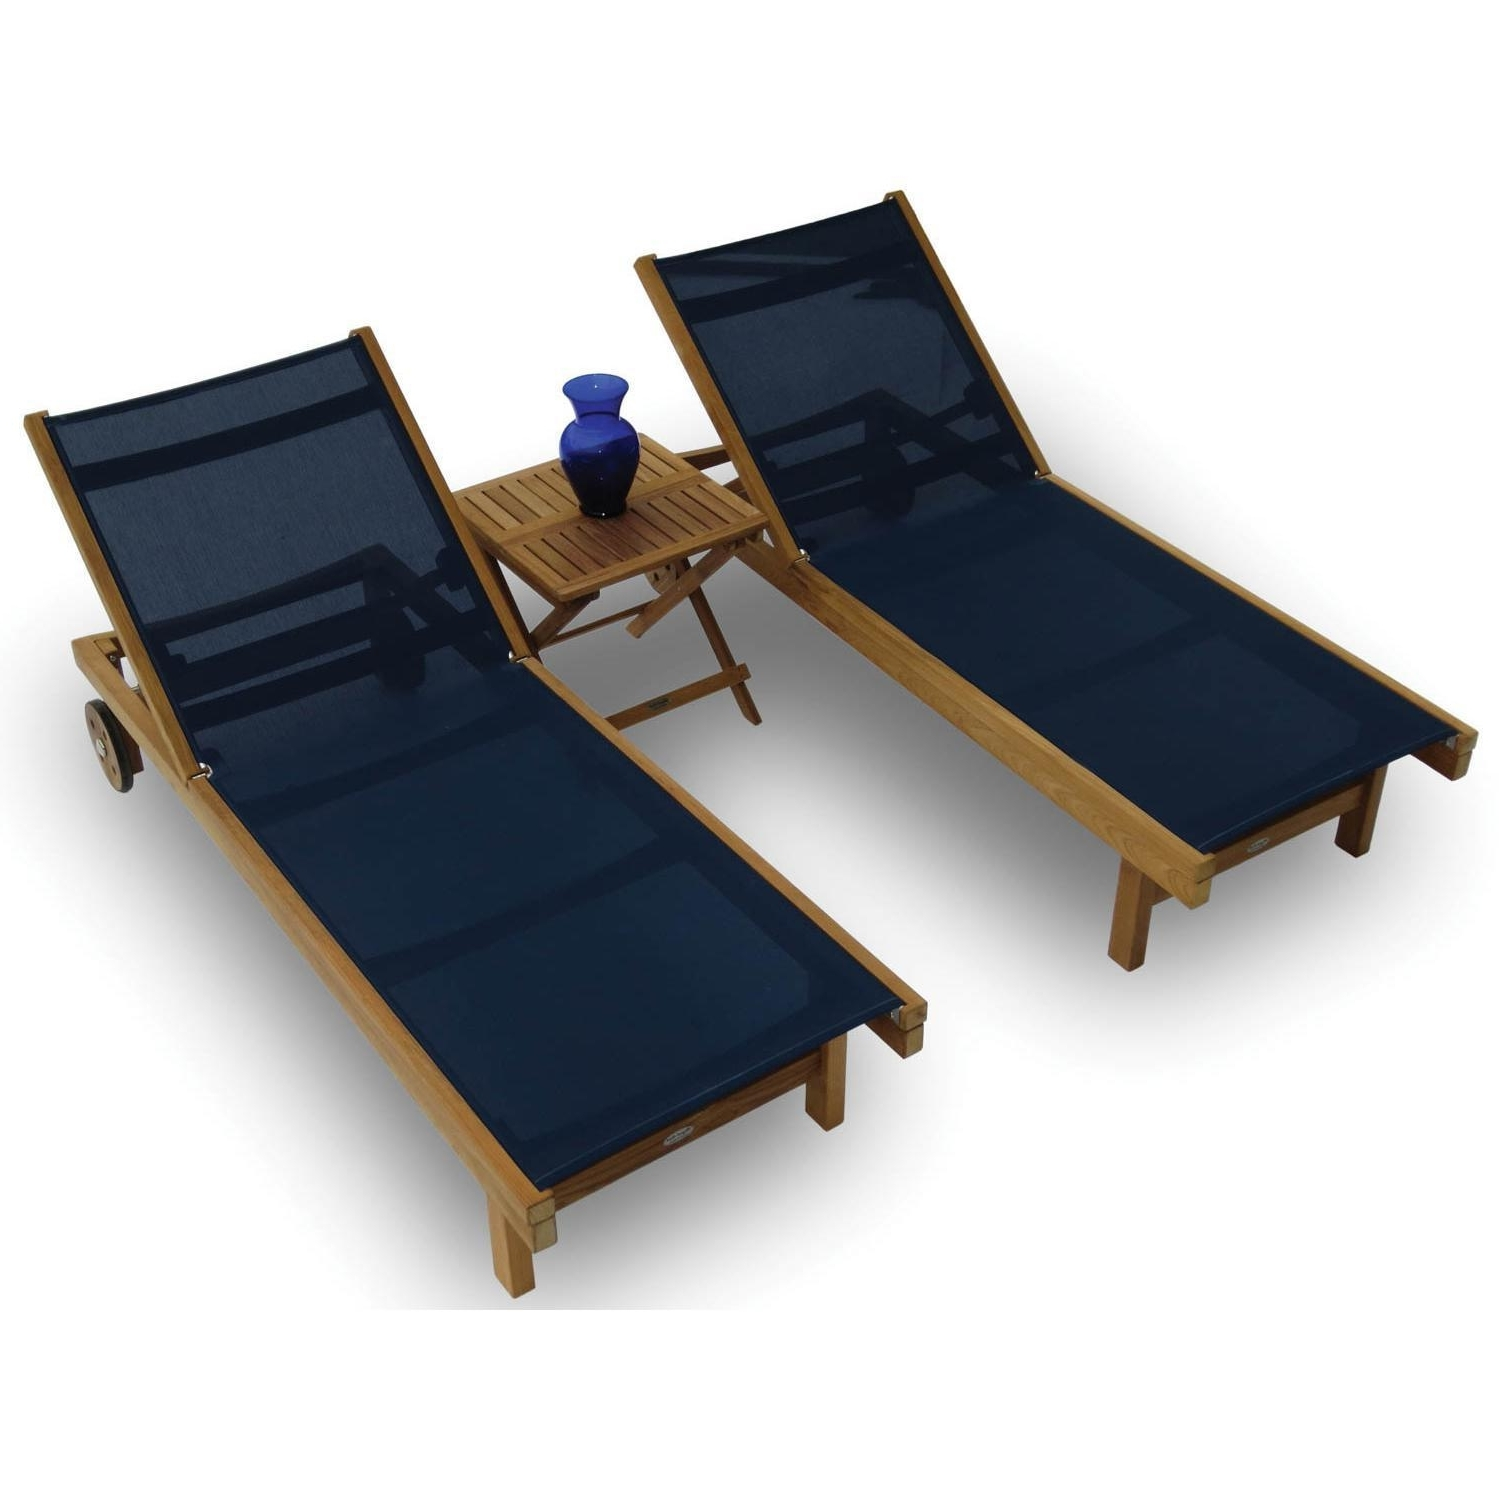 Royal Teak Collection Sundaze 2 Person Sling Chaise Lounge Set Intended For Preferred Sling Chaise Lounges (View 8 of 15)